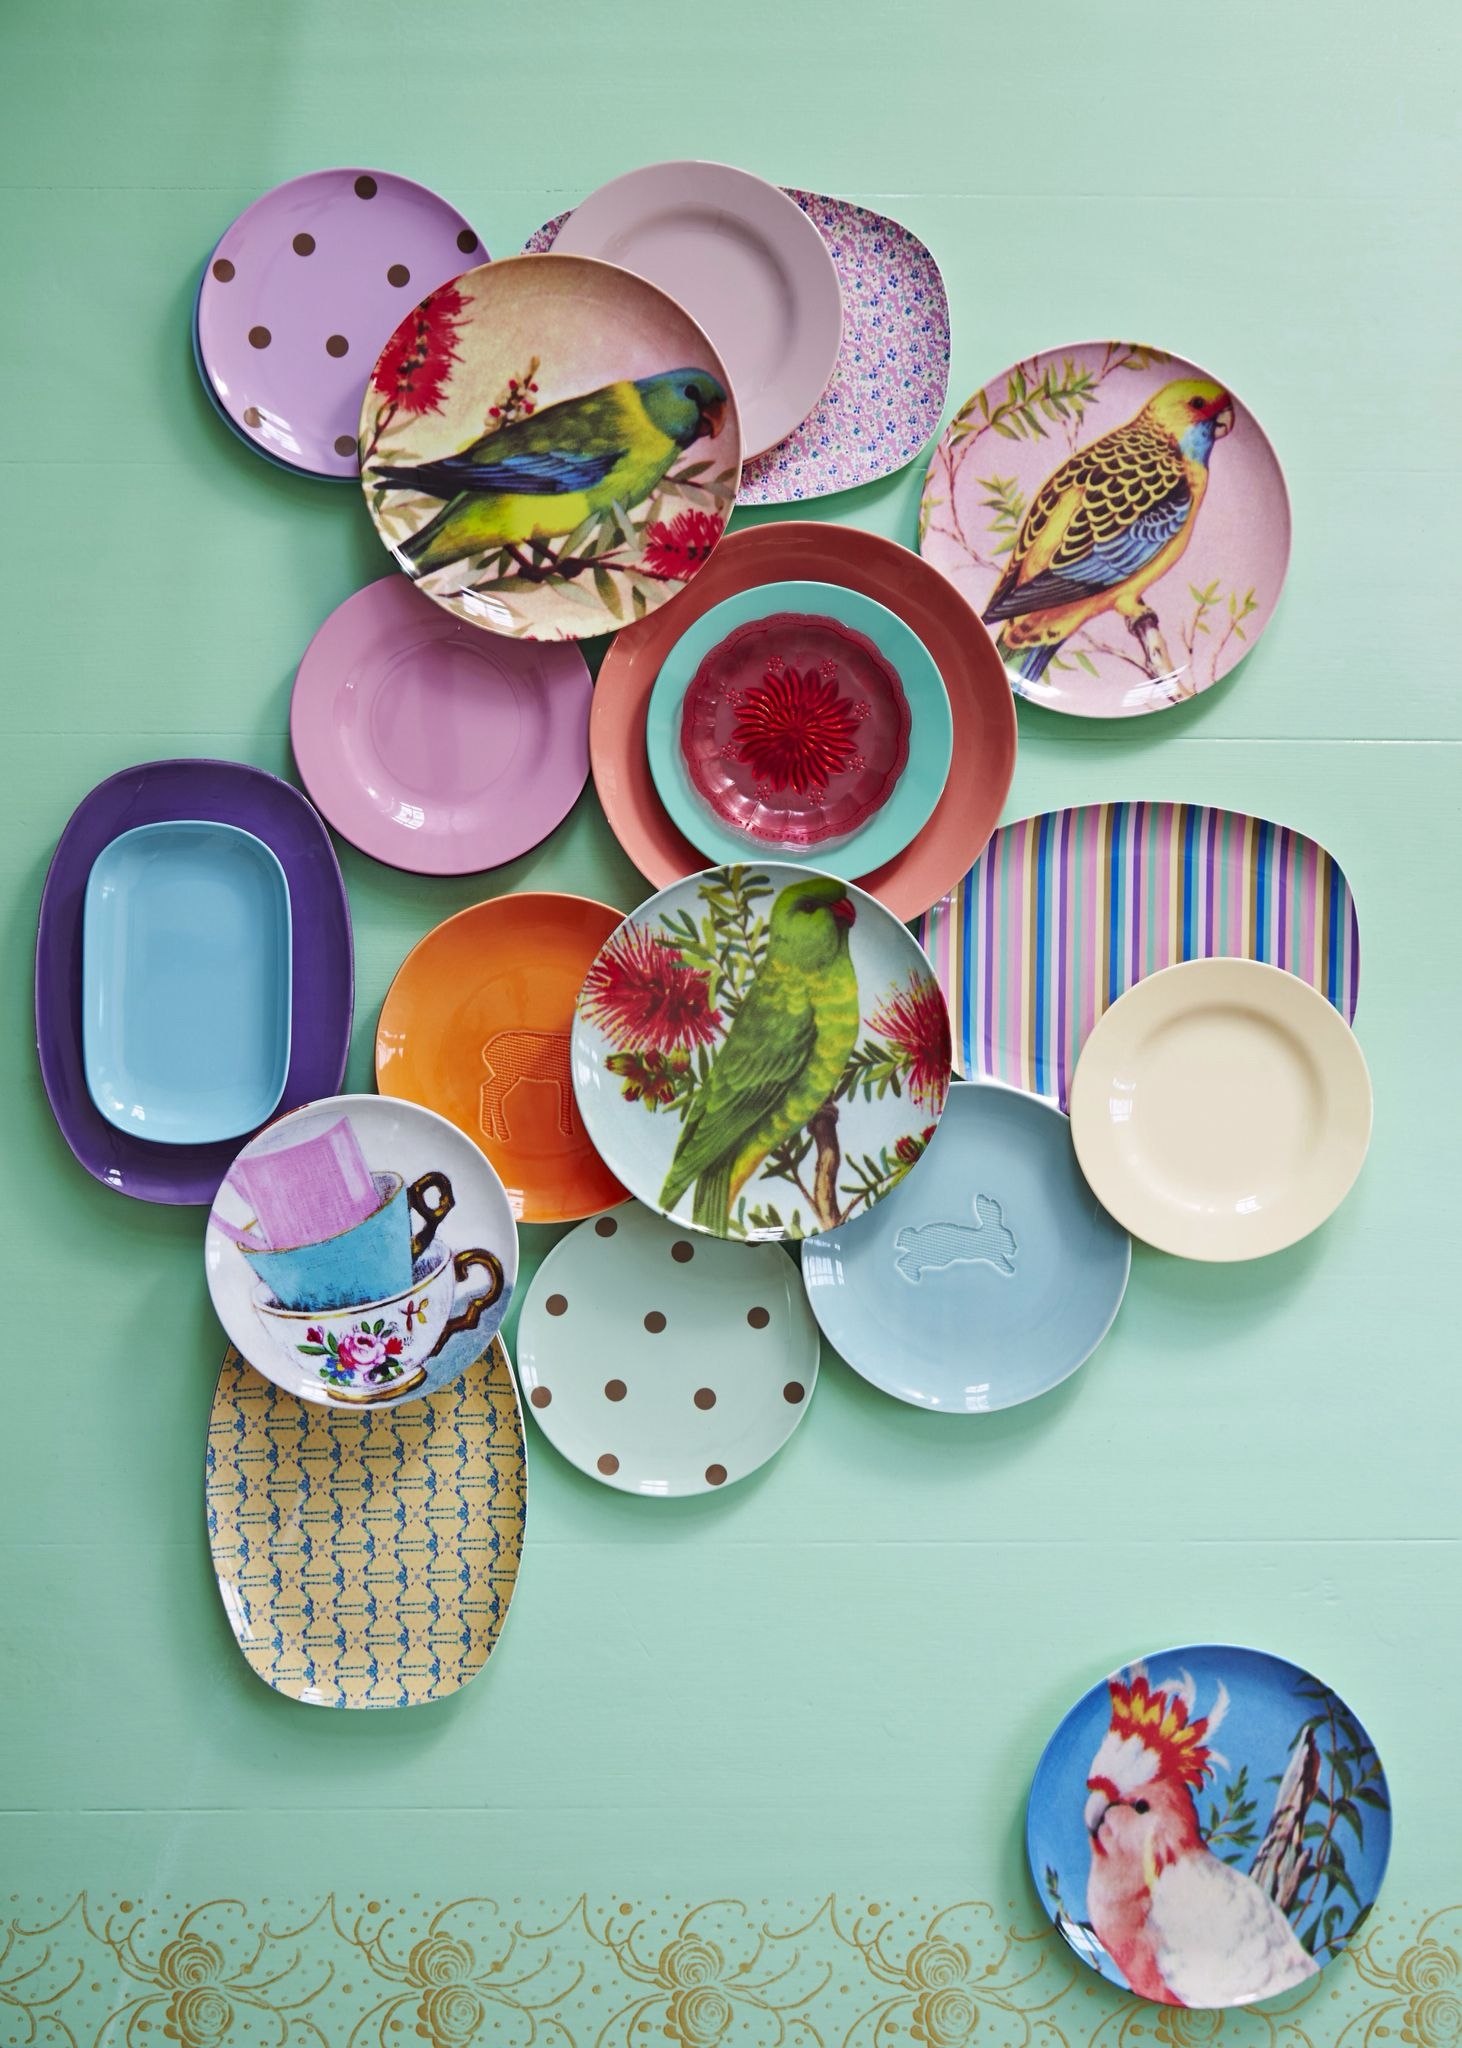 Melamine Love RICE AW14 & Melamine Love RICE AW14 | Ceramics table and kitchenware | Pinterest ...